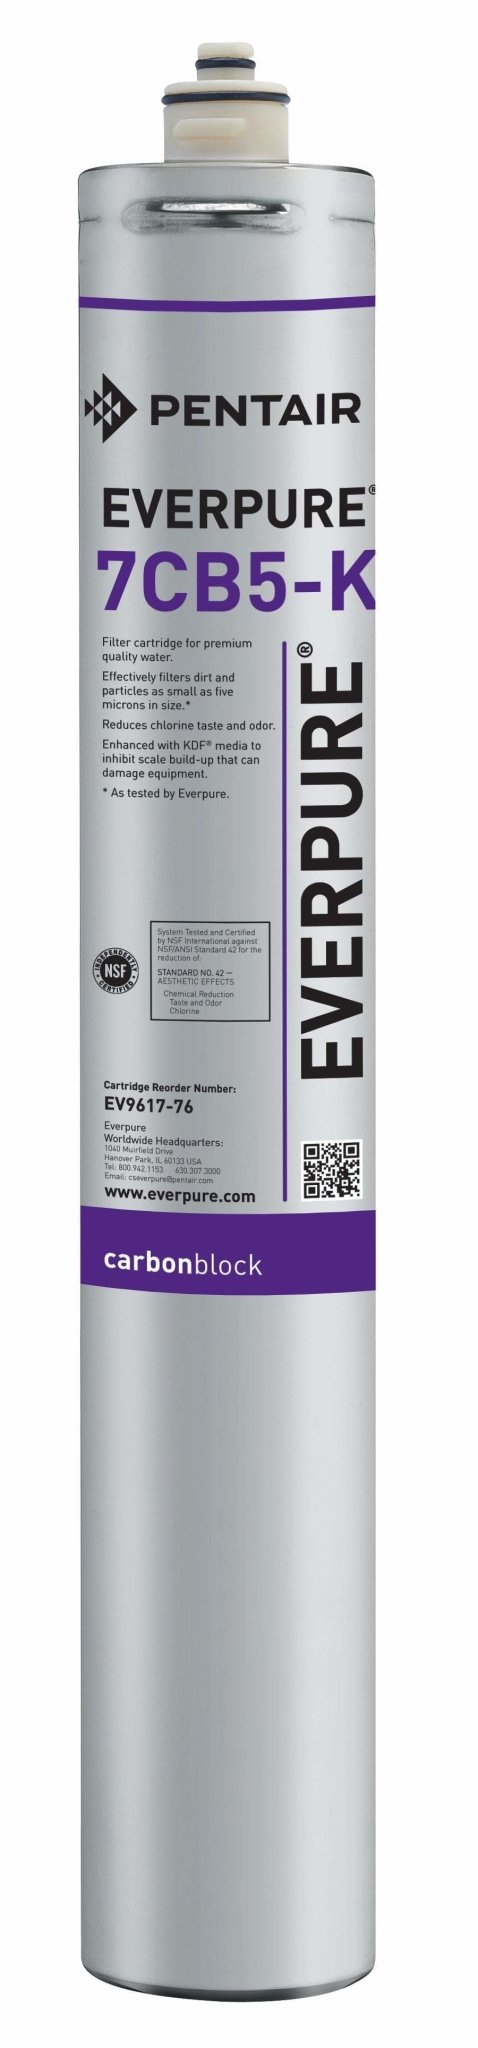 Everpure 7CB5-K Cartridge EV9617-76 - Efilters.ca